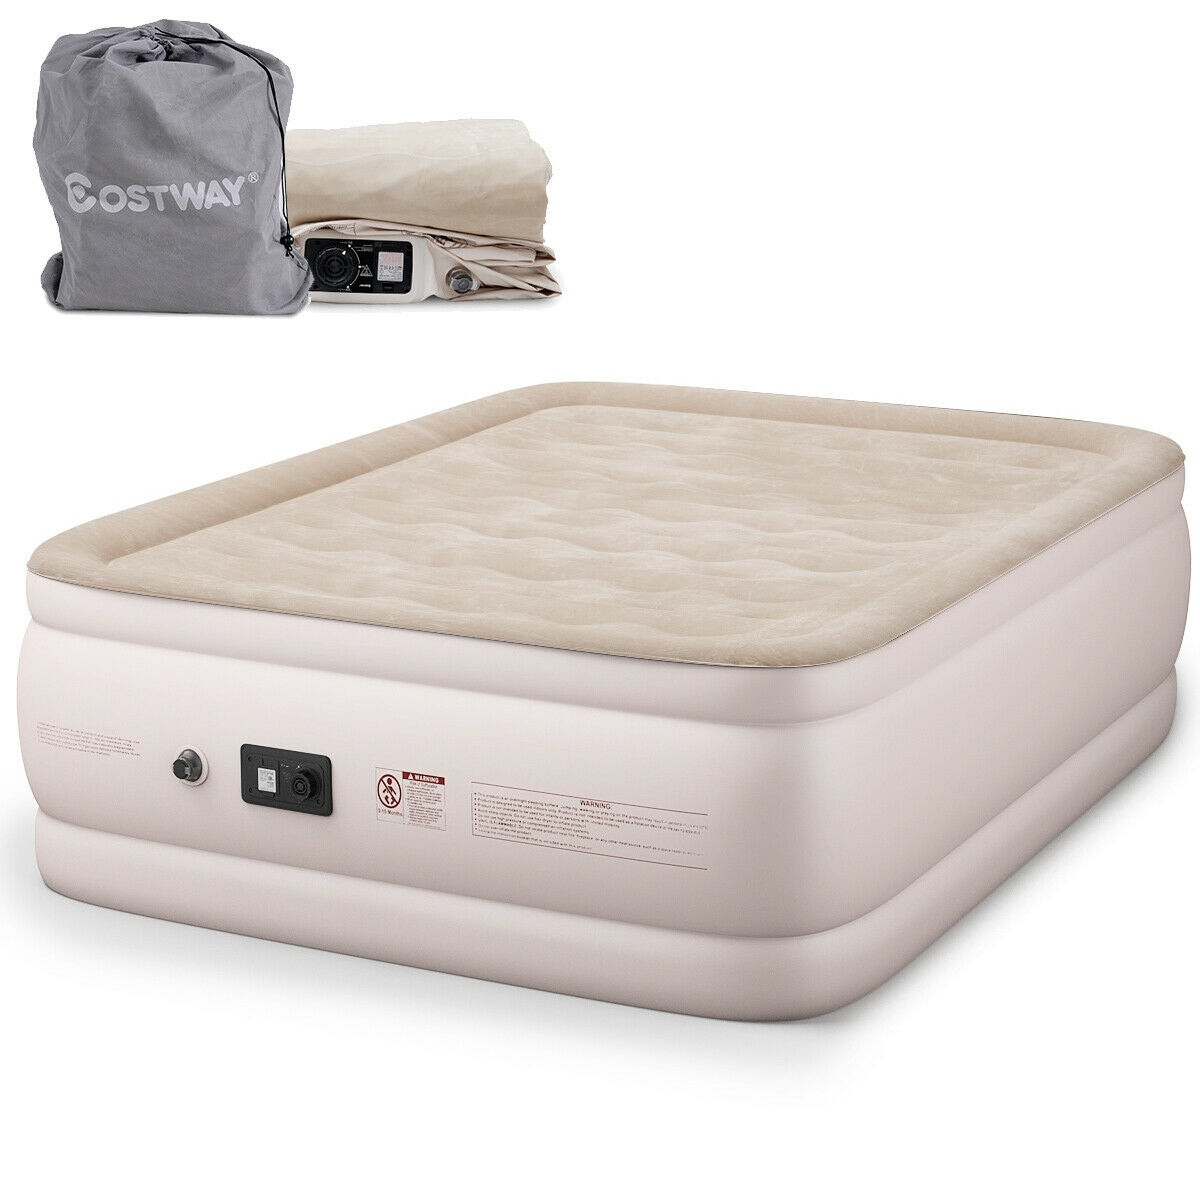 Shop Costway Queen Size Luxury Quilt Top Raised Air Mattress